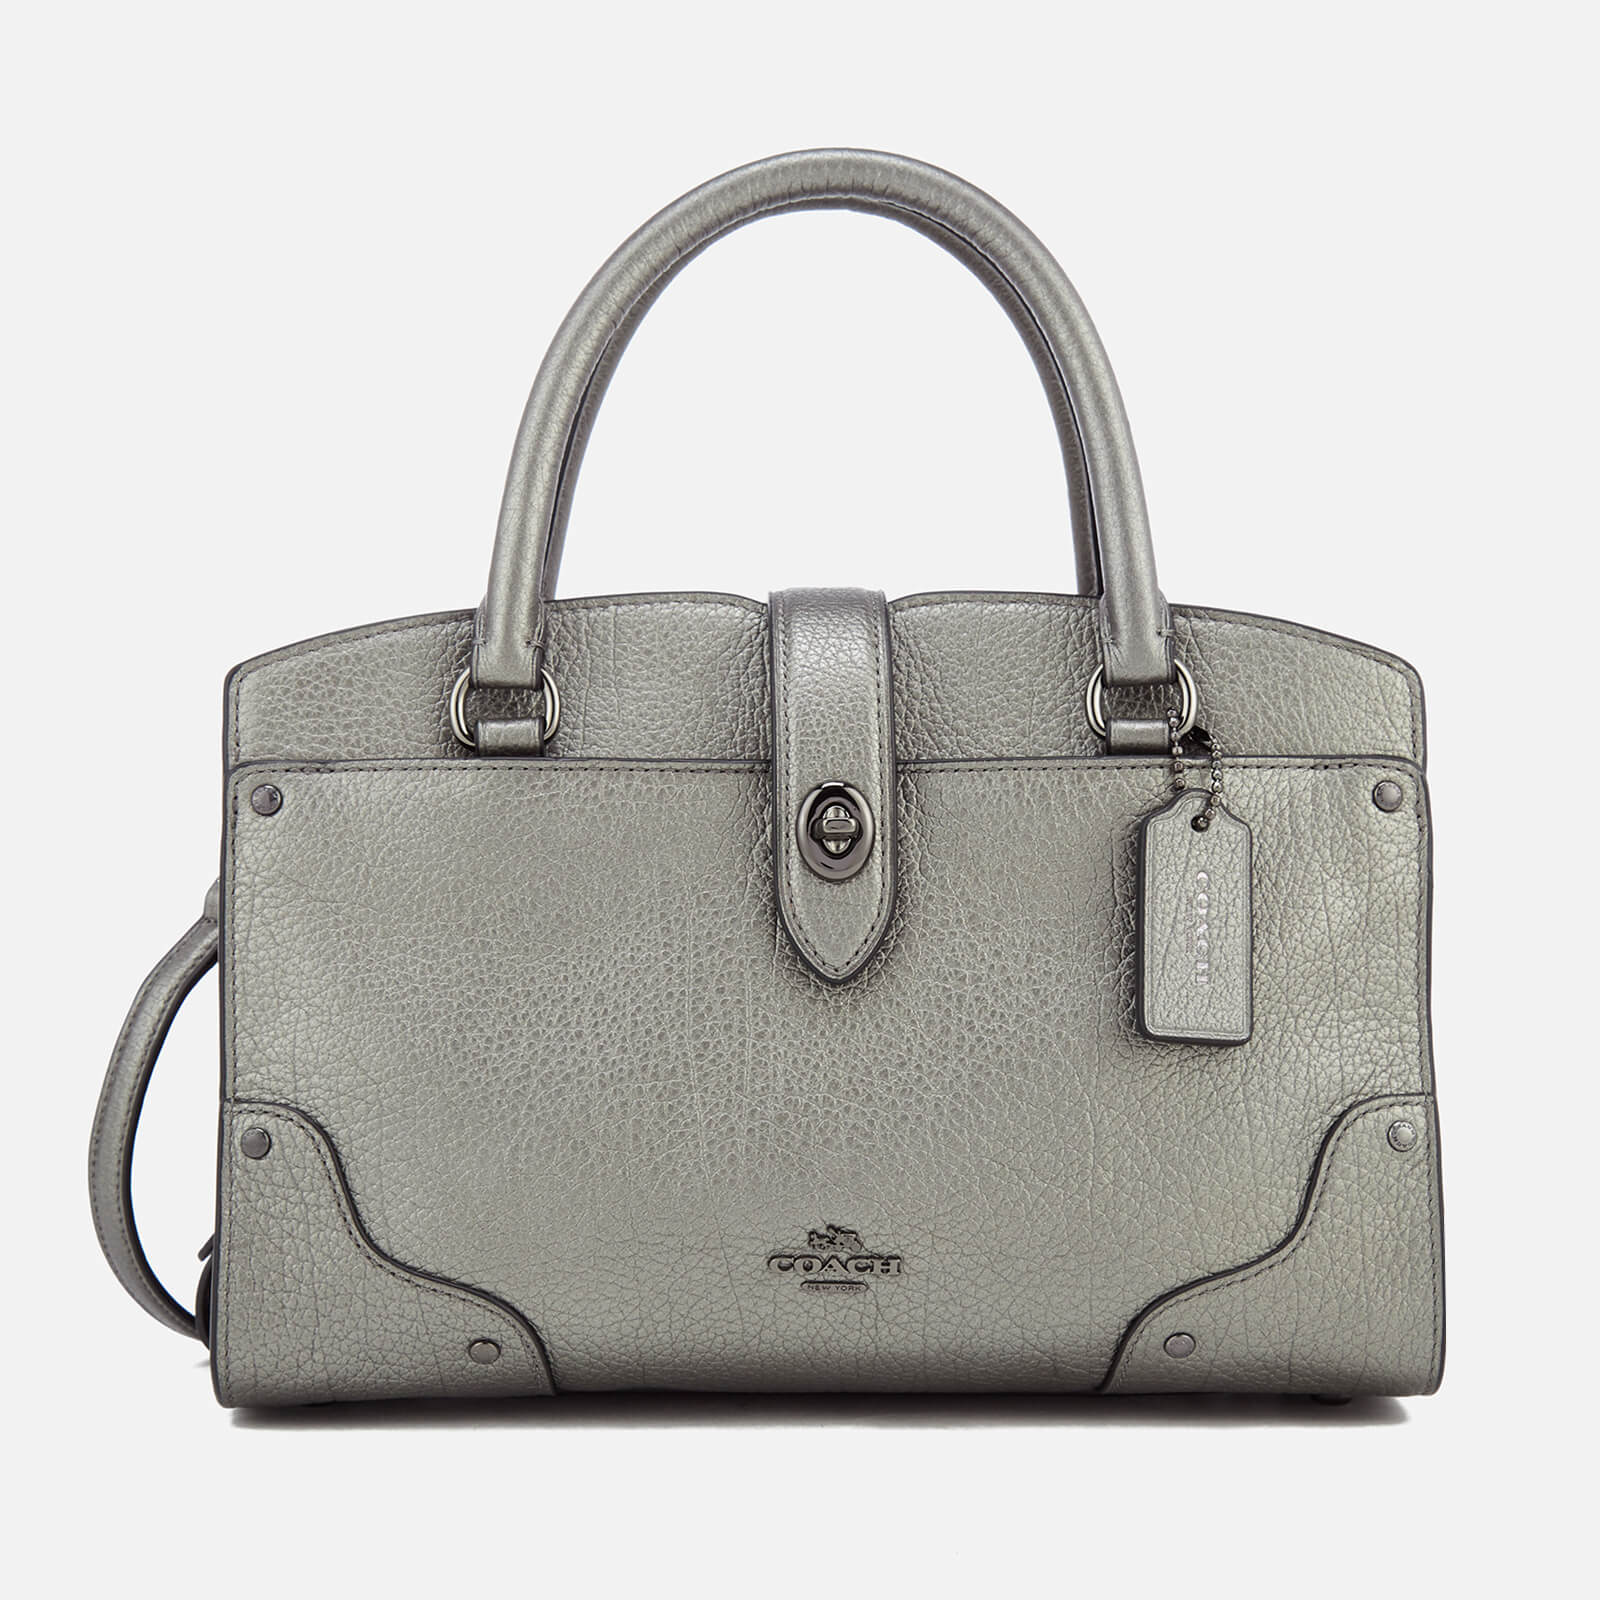 15c76553aed Coach Women's Mercer Tote Bag - Gun Metal - Free UK Delivery over £50